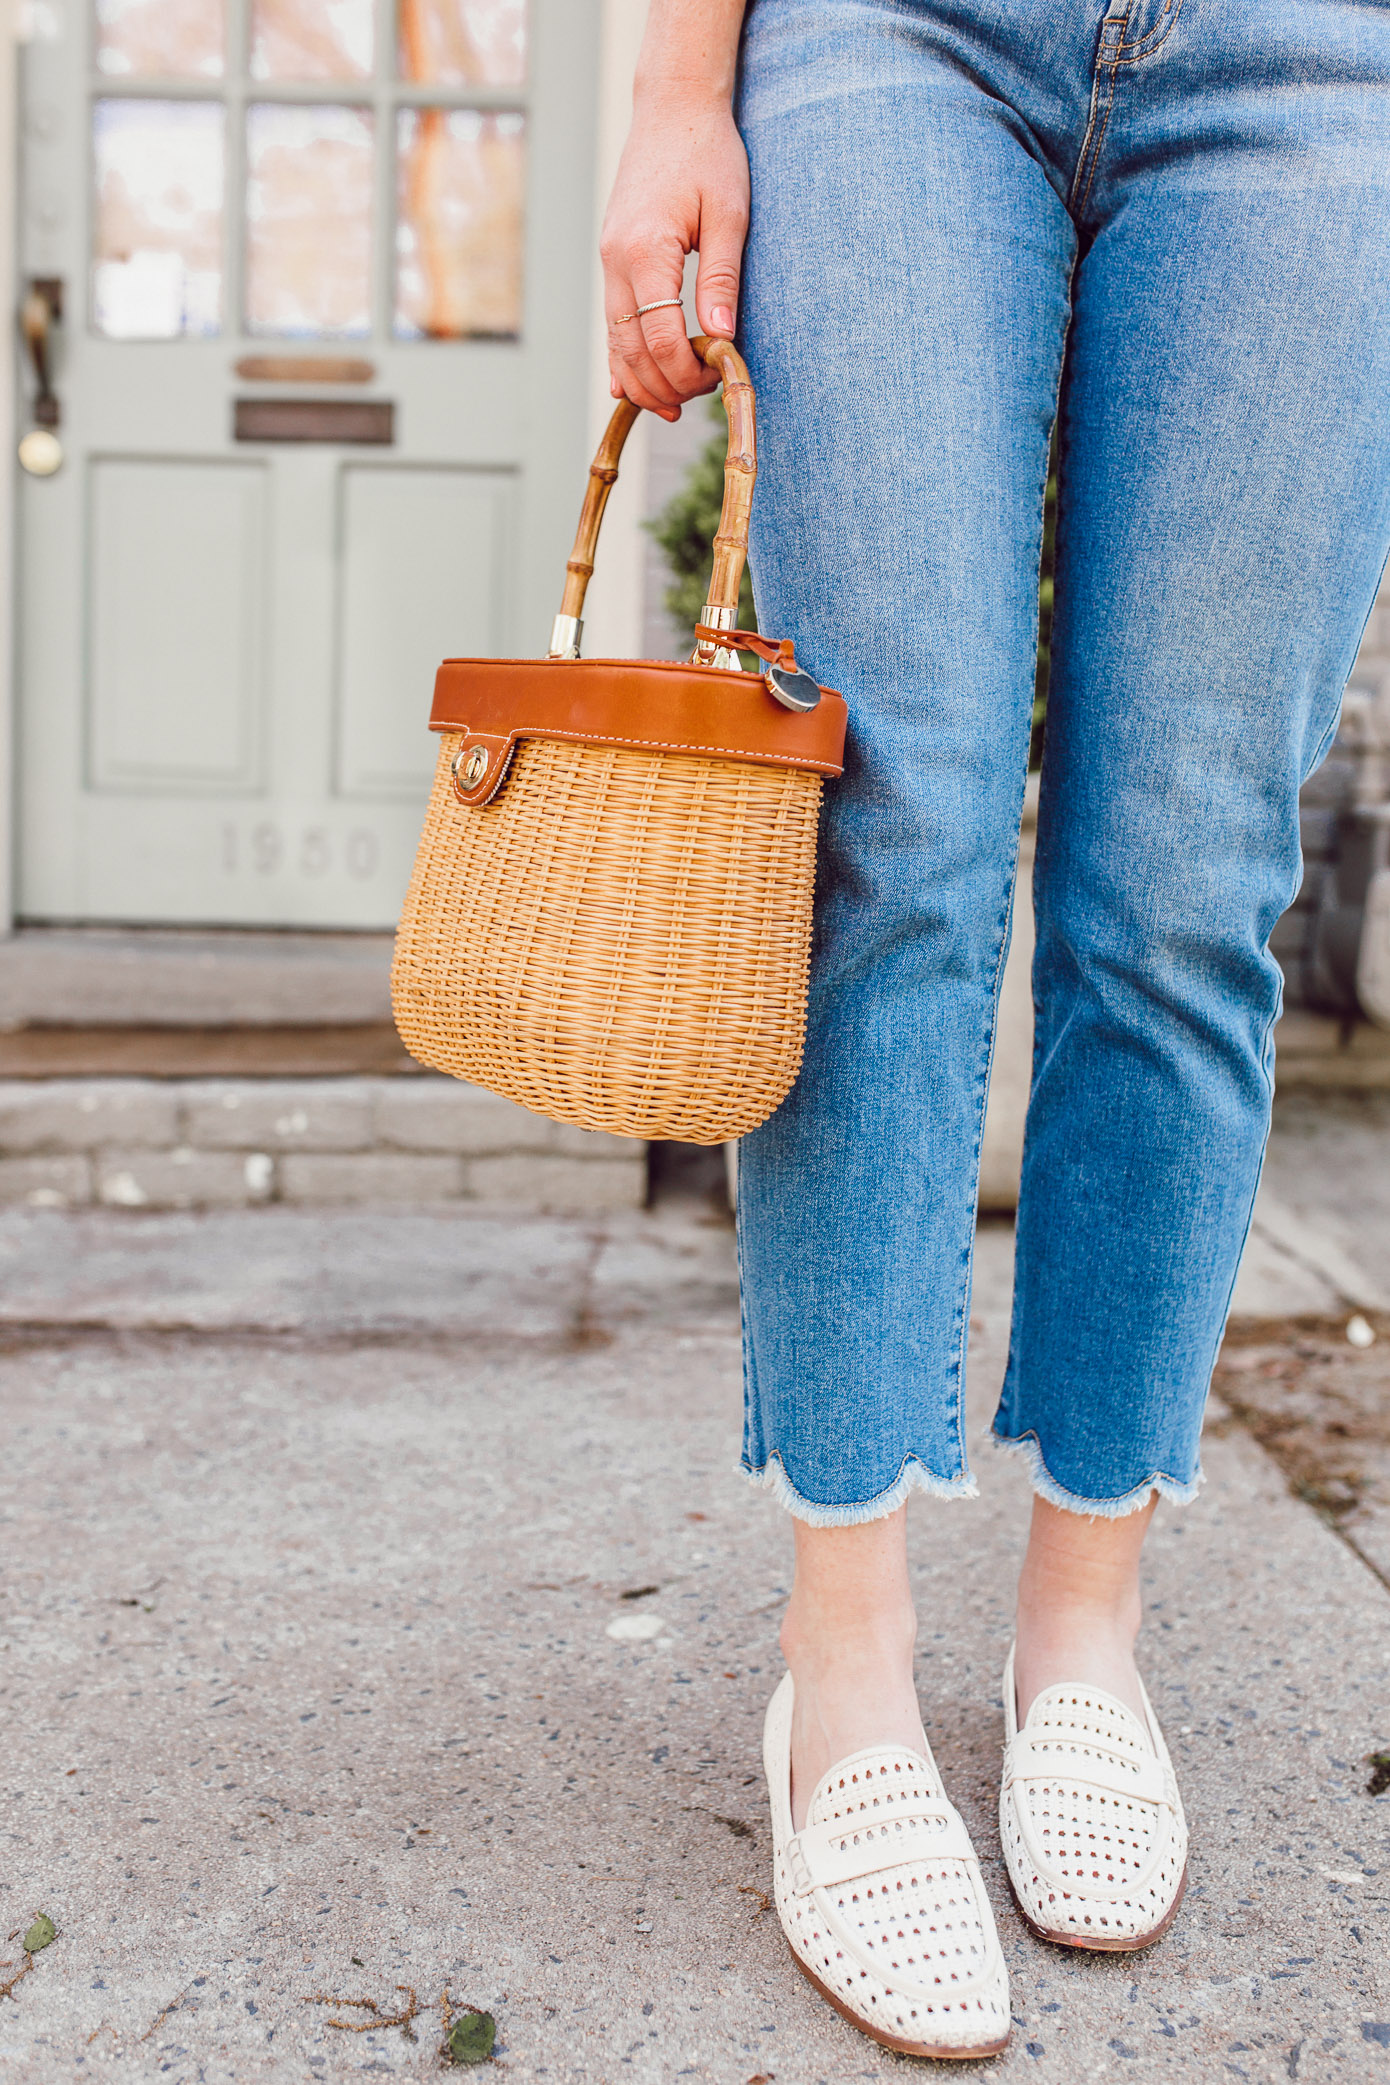 Scalloped Hem Jeans   Jeans for Spring 2019   Louella Reese